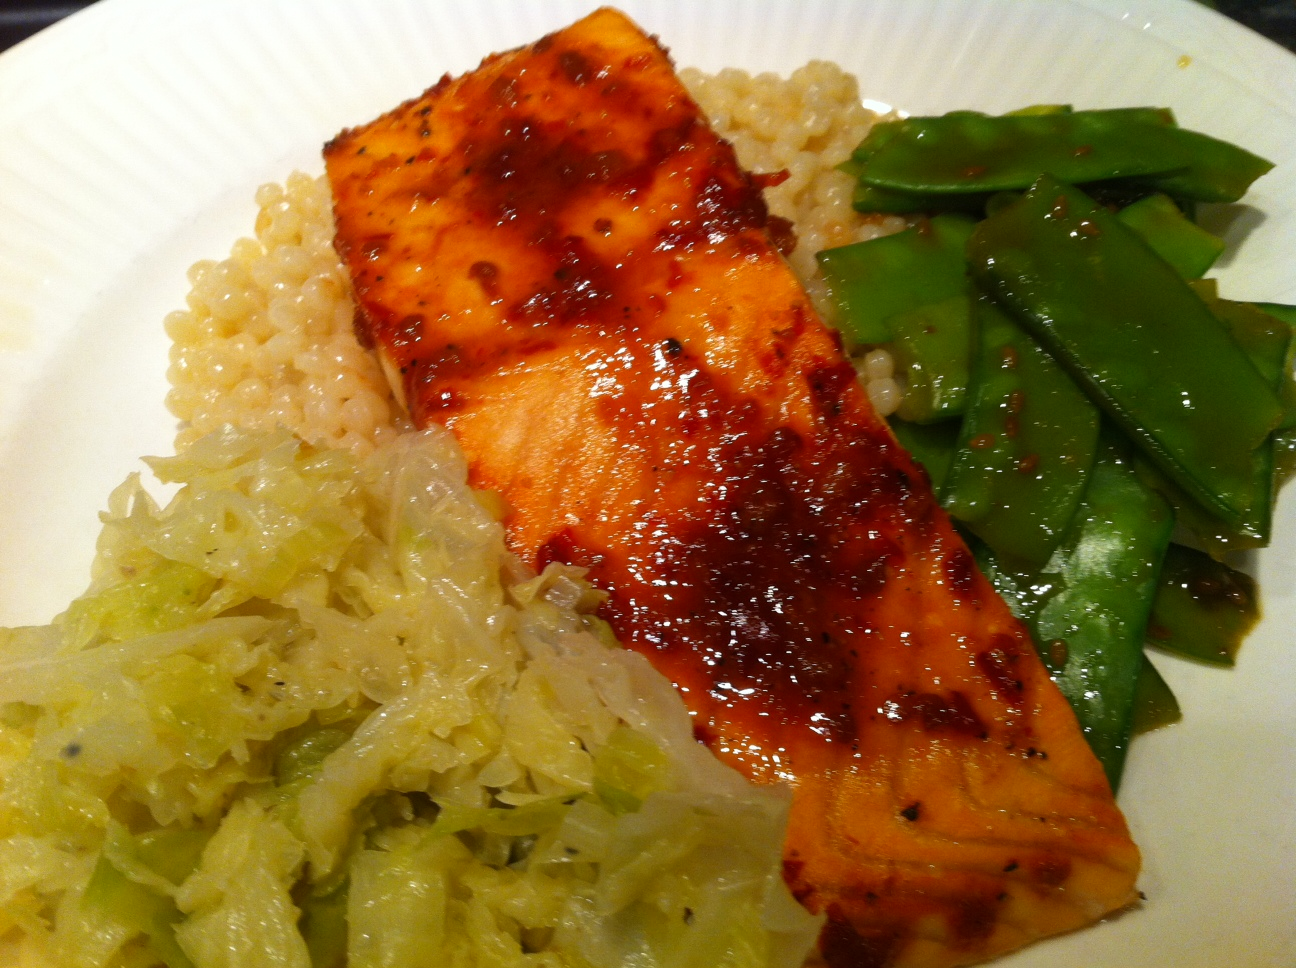 Chili Garlic Glazed Salmon with Israeli Pearl Couscous, Sauteed Cabbage and Snow Peas